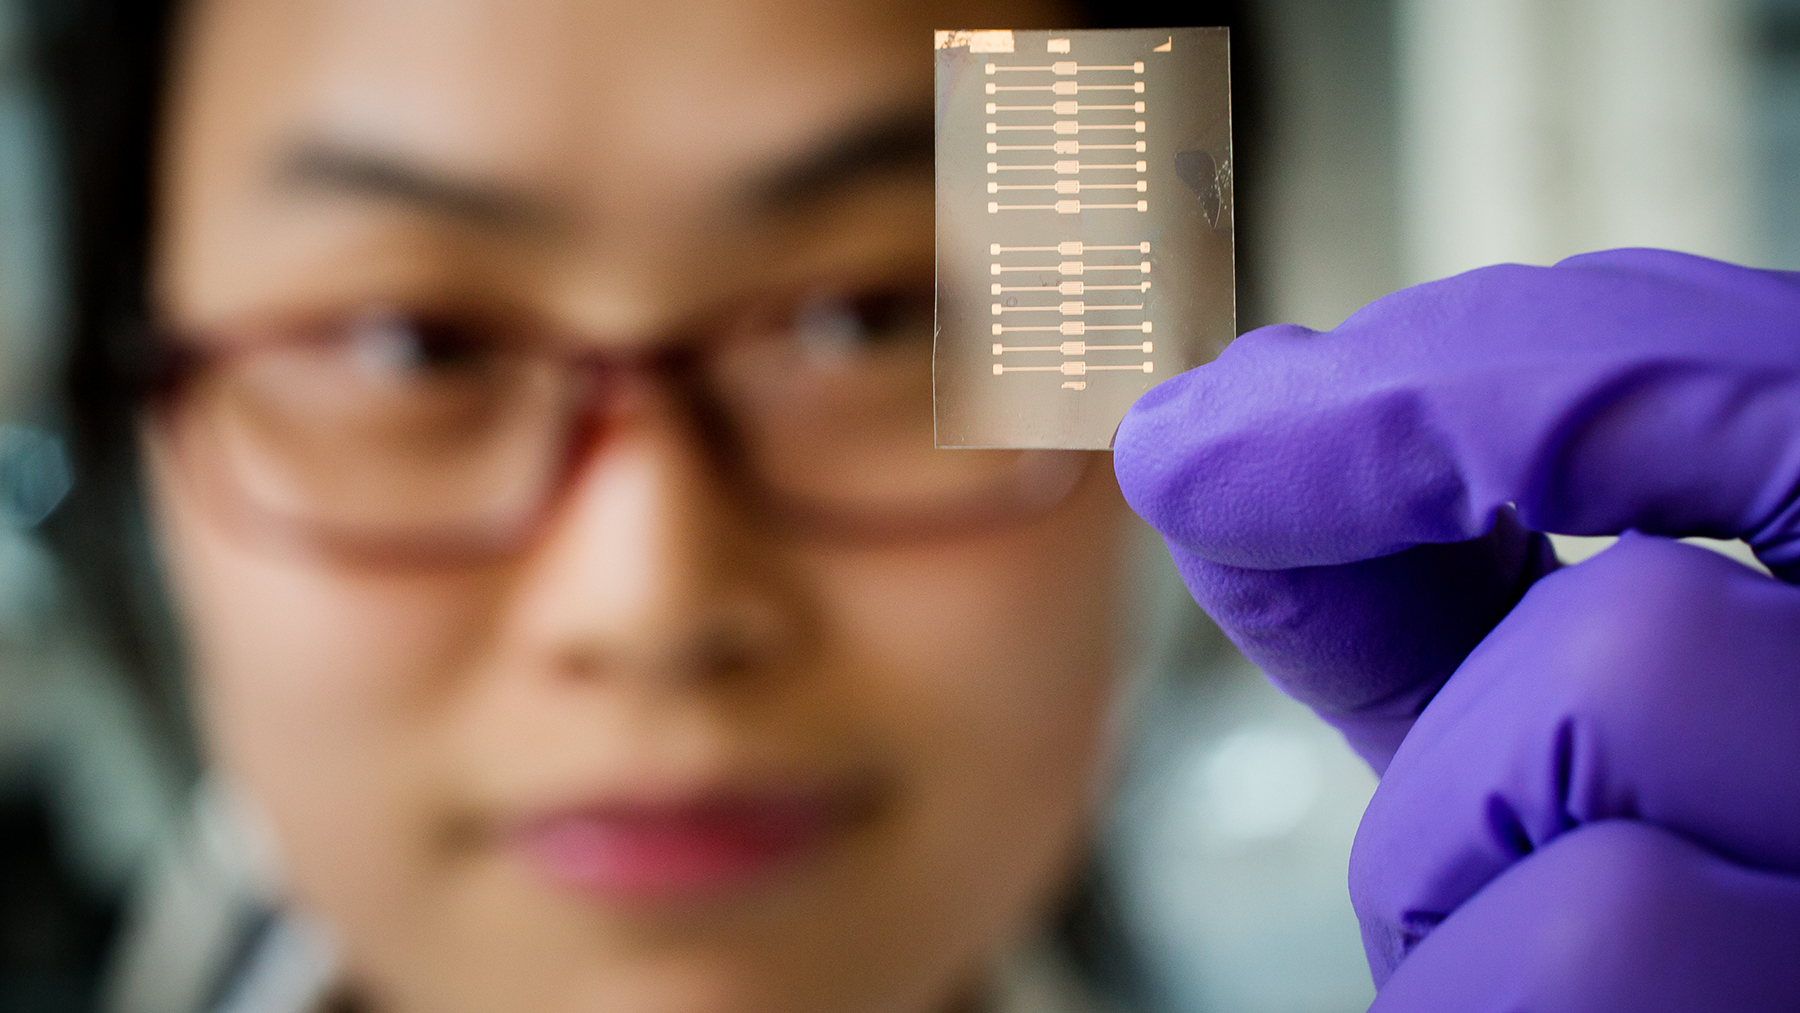 researcher looks at small plastic sensor that reacts to breath